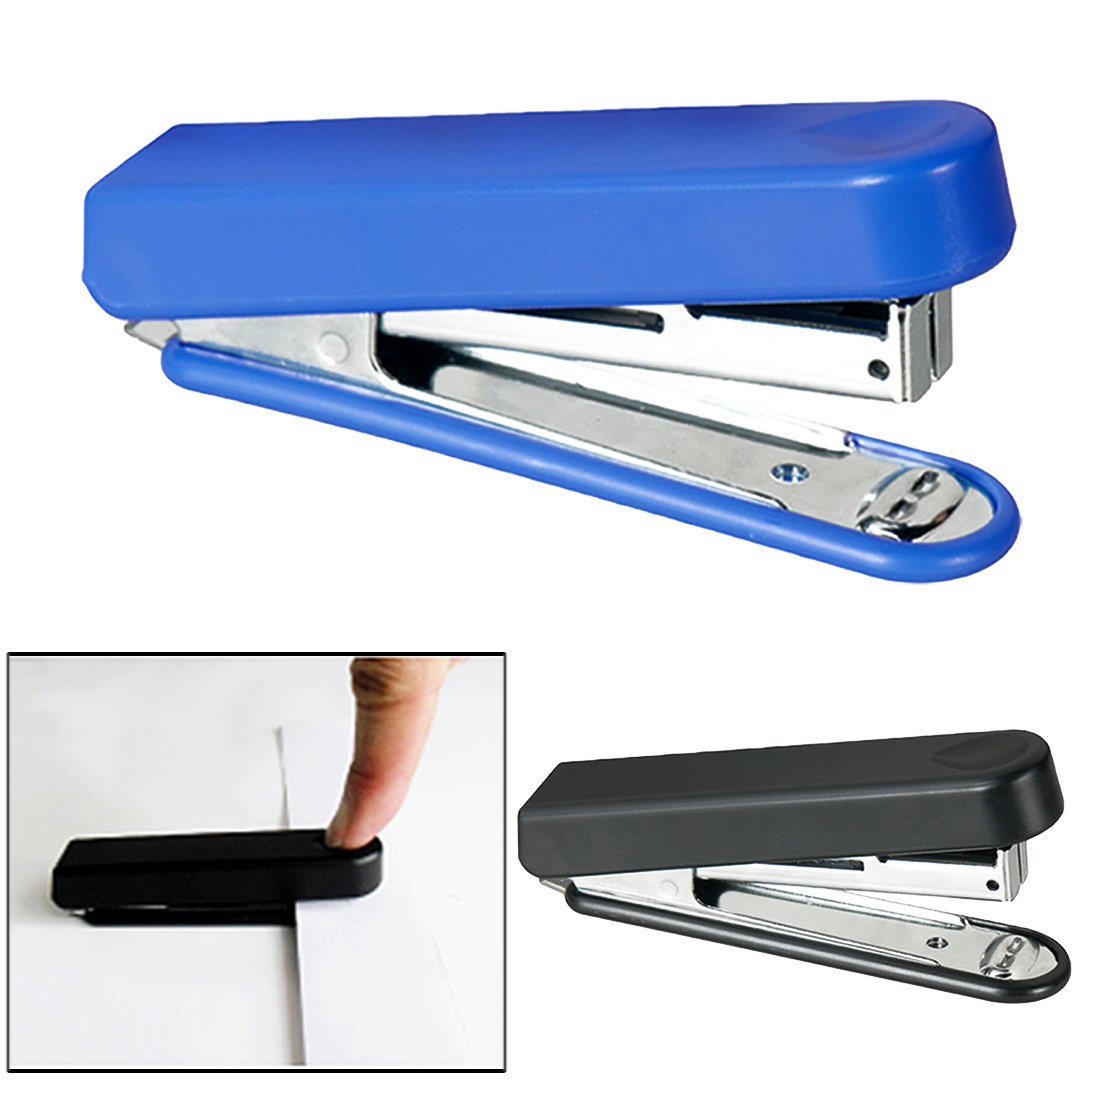 FangNymph Metal Mini Safe Stapler Without Staples Staple Free Stapleless Capacity For Paper Binding Business School Office